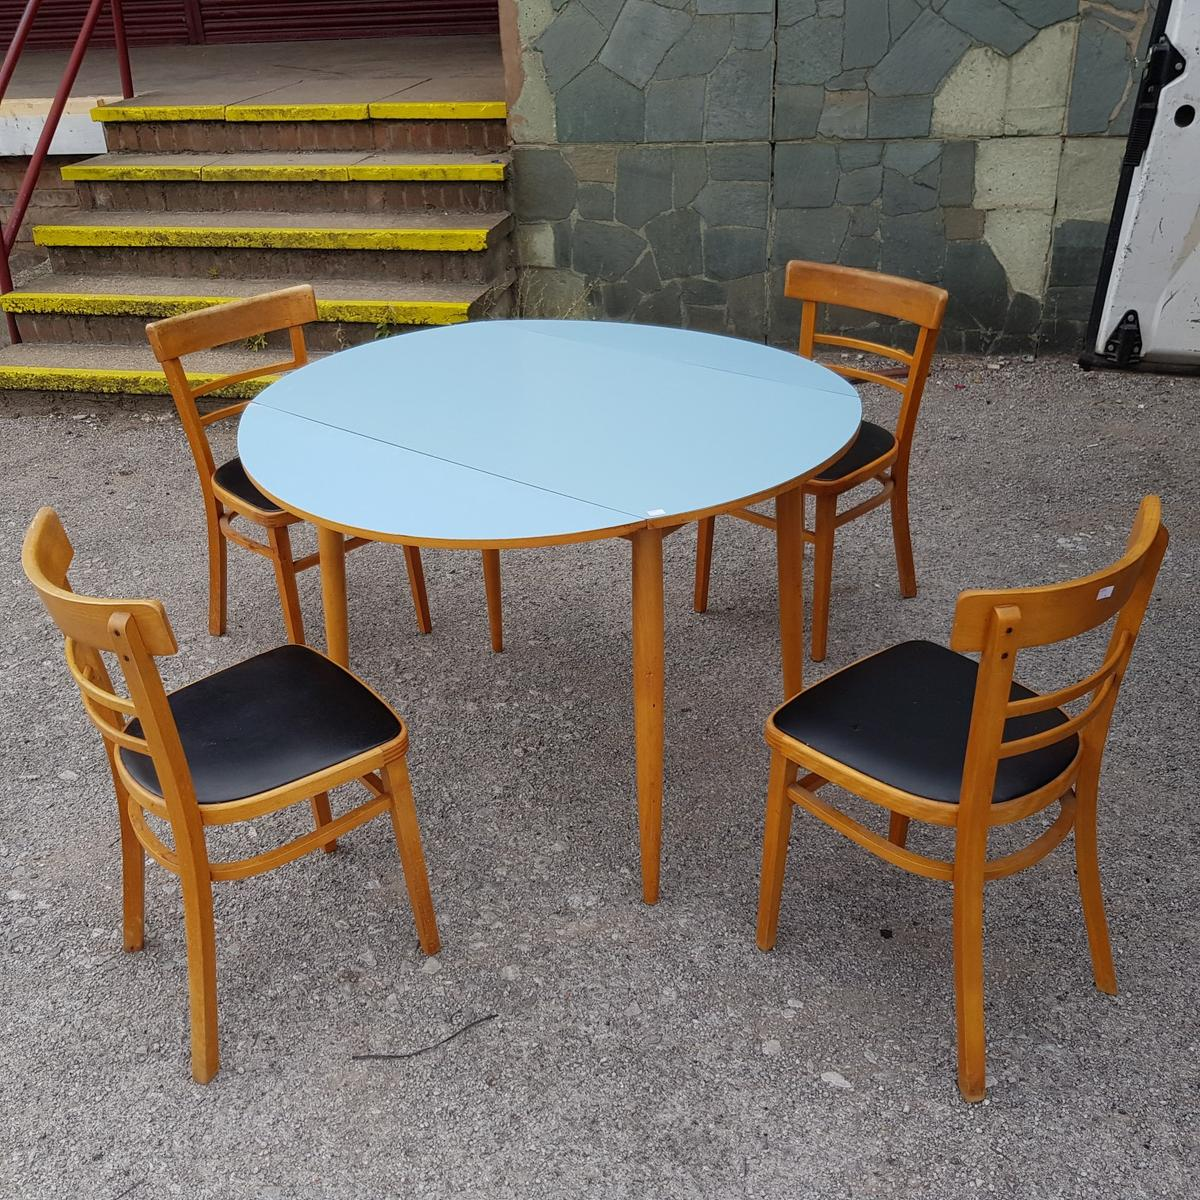 Vintage Retro Formica Dining Table Chairs In Le3 Blaby For 140 00 For Sale Shpock